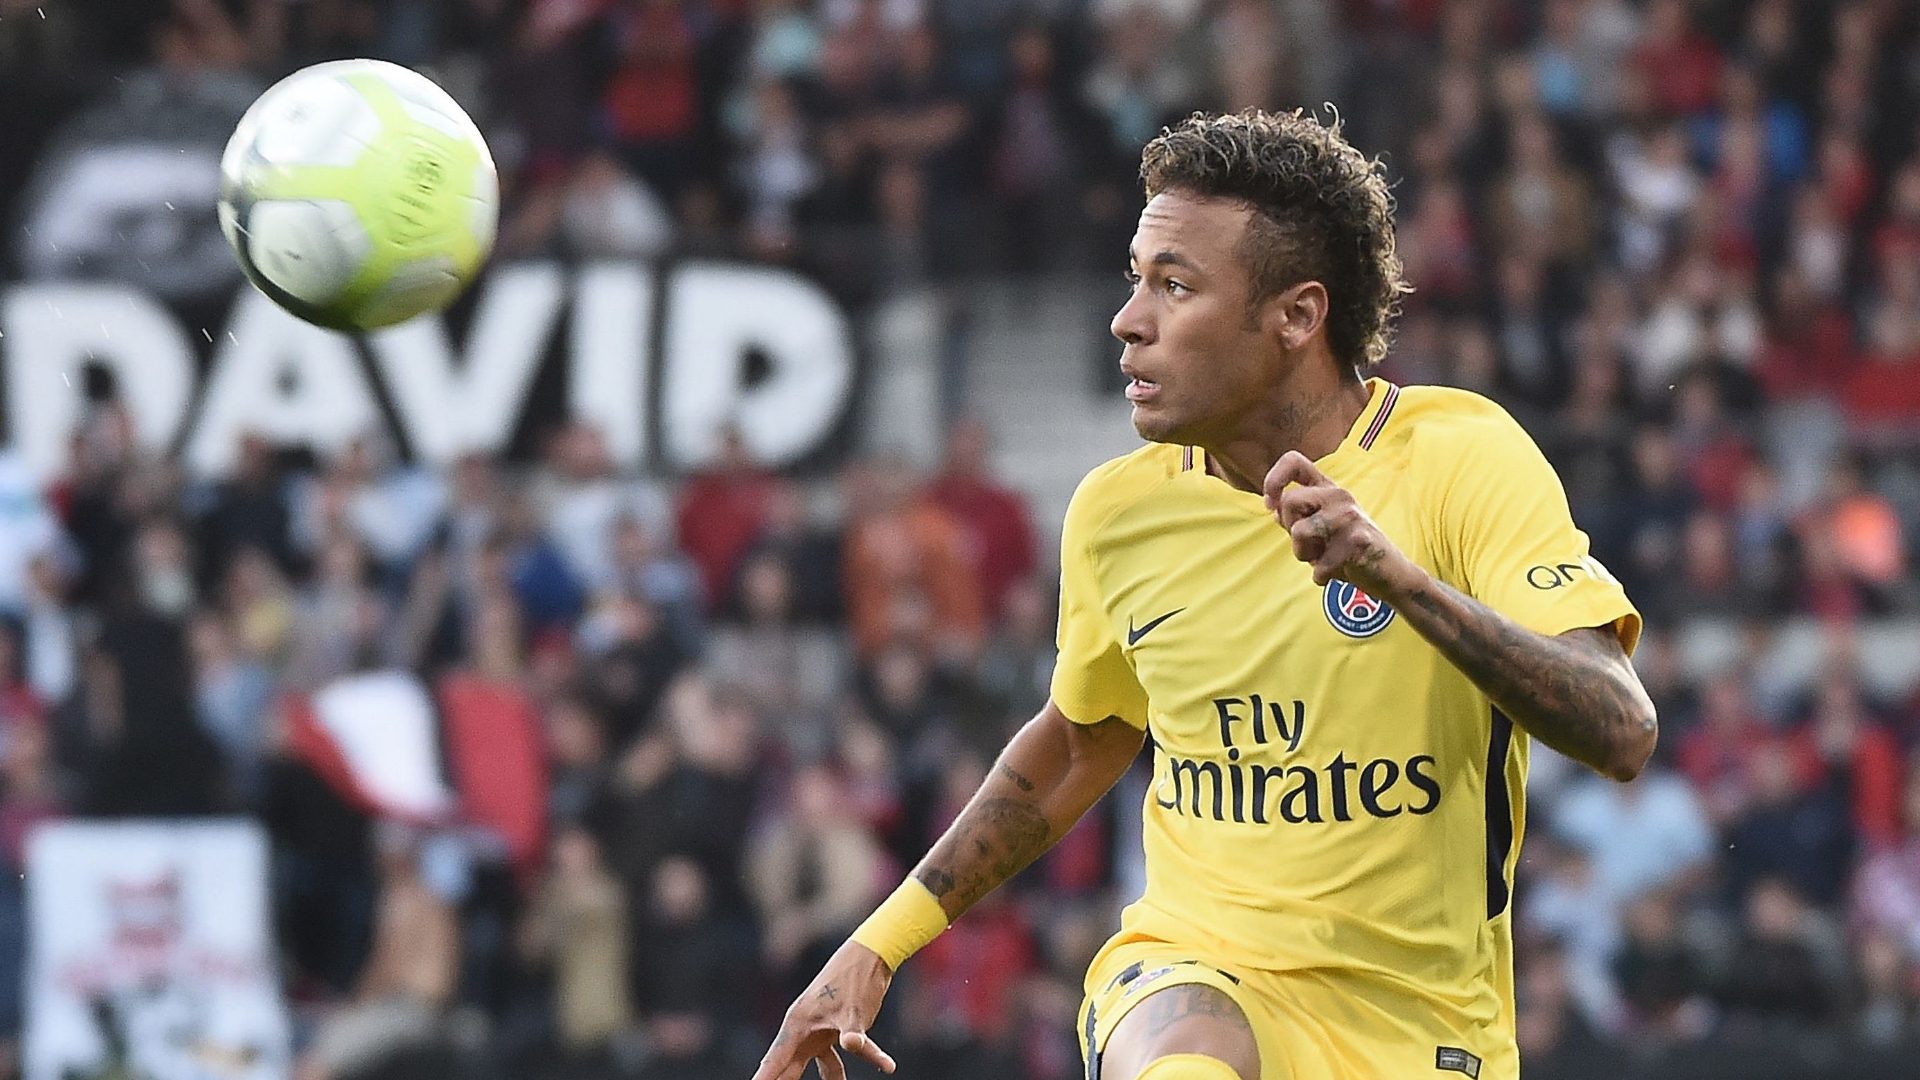 Neymar Scores on PSG Debut vs. Guingamp